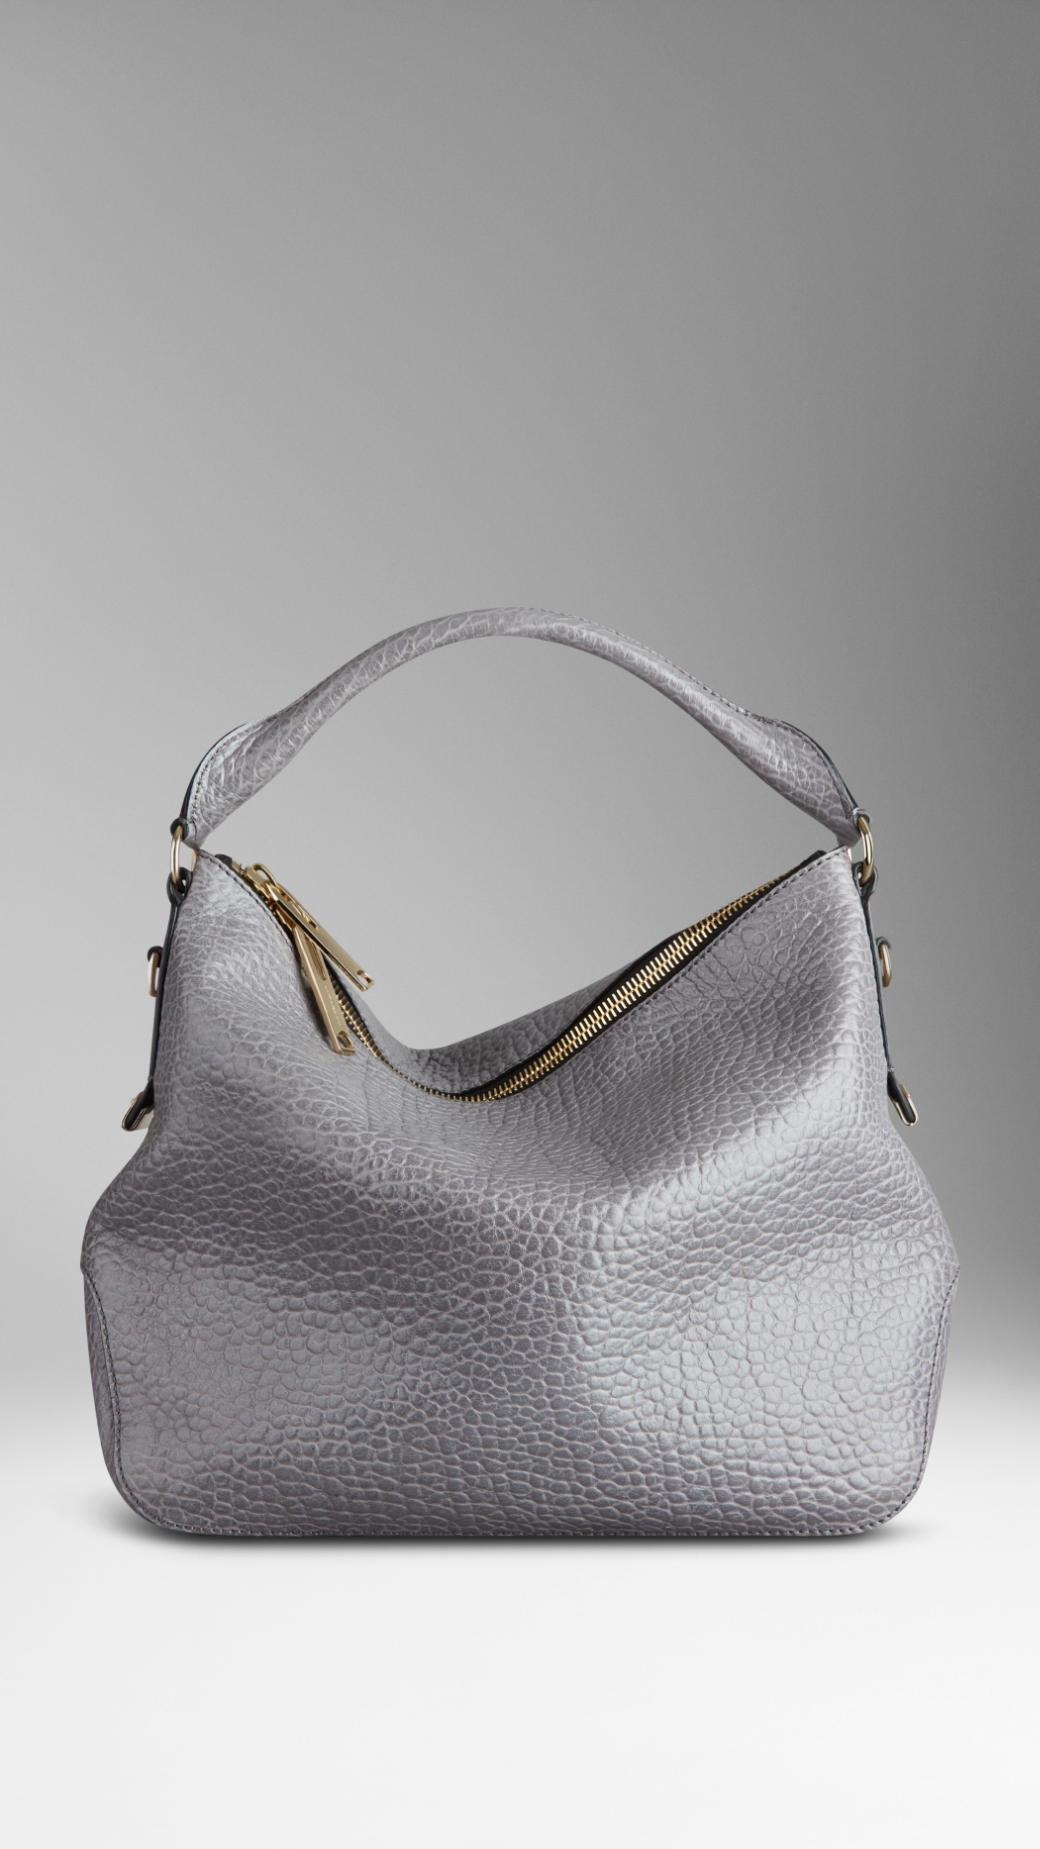 "Bags Updated Women's Handle Version Top Simple Tote Handbag Yaluxe Leather Designer Genuine Grey Inspired The comments above seem to believe in some way something similar. Choosing to be selfless is in a way establishing a ""self"", since you ."